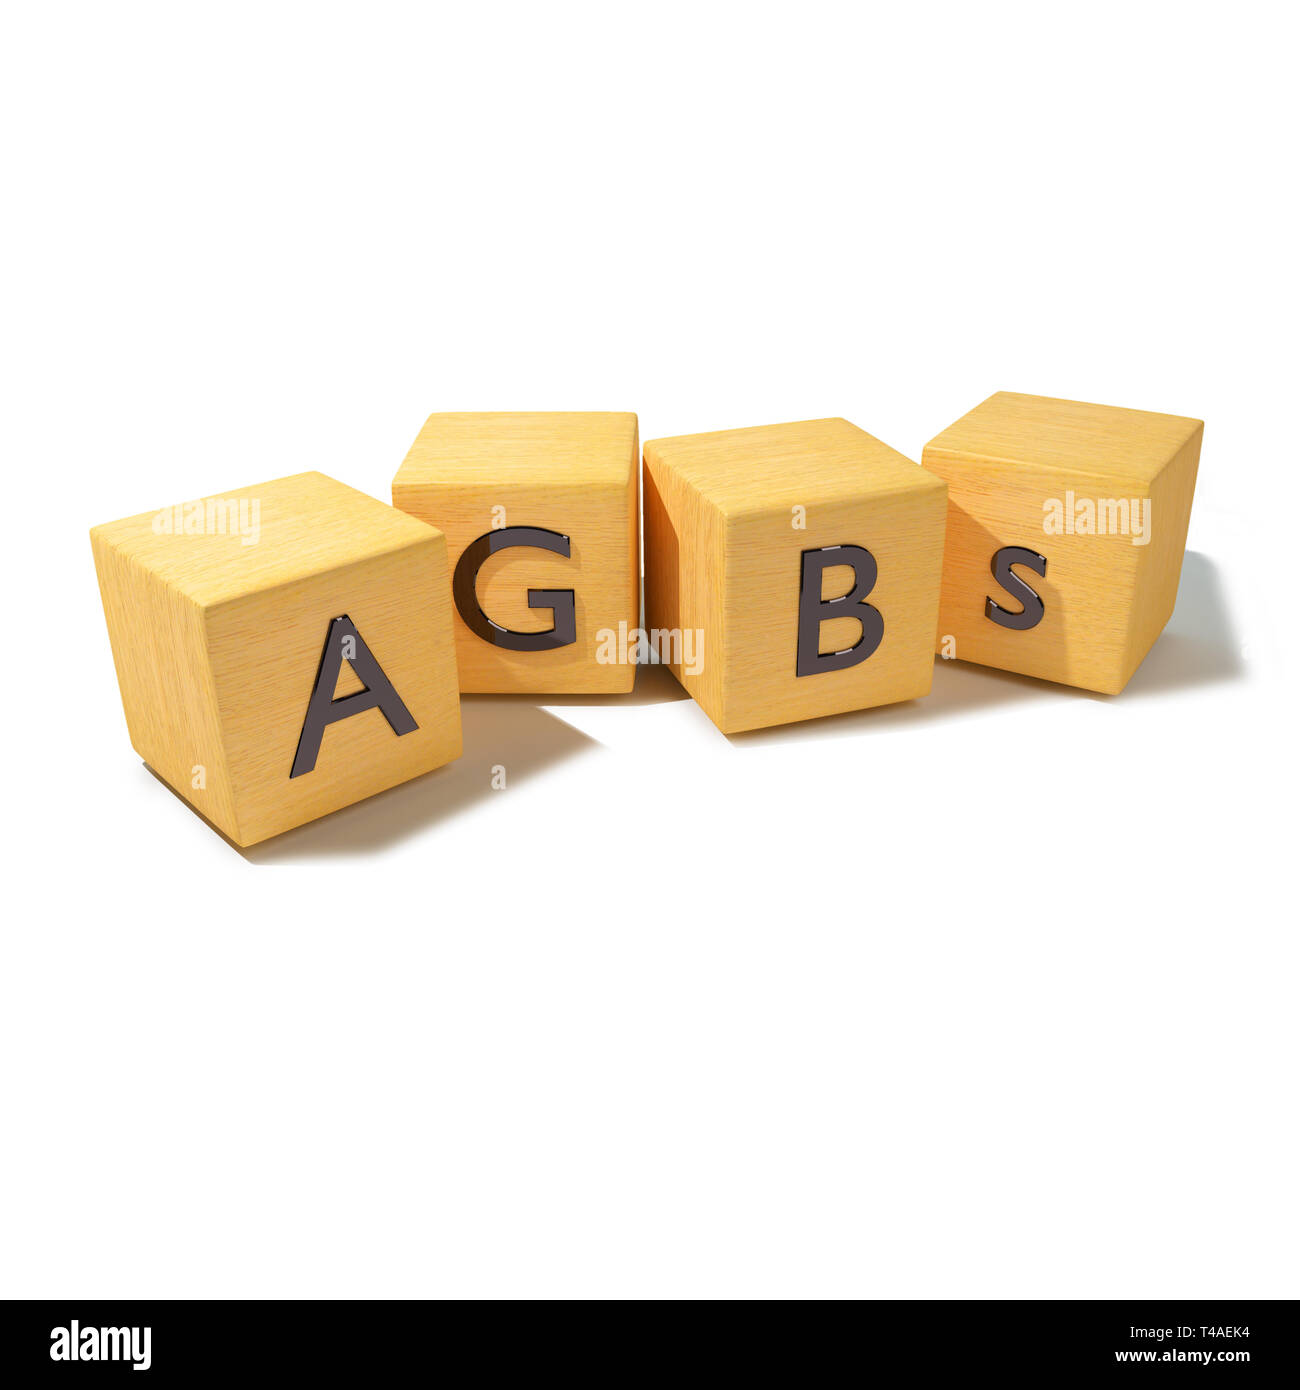 Wood cubes with policies and terms and conditions - Stock Image